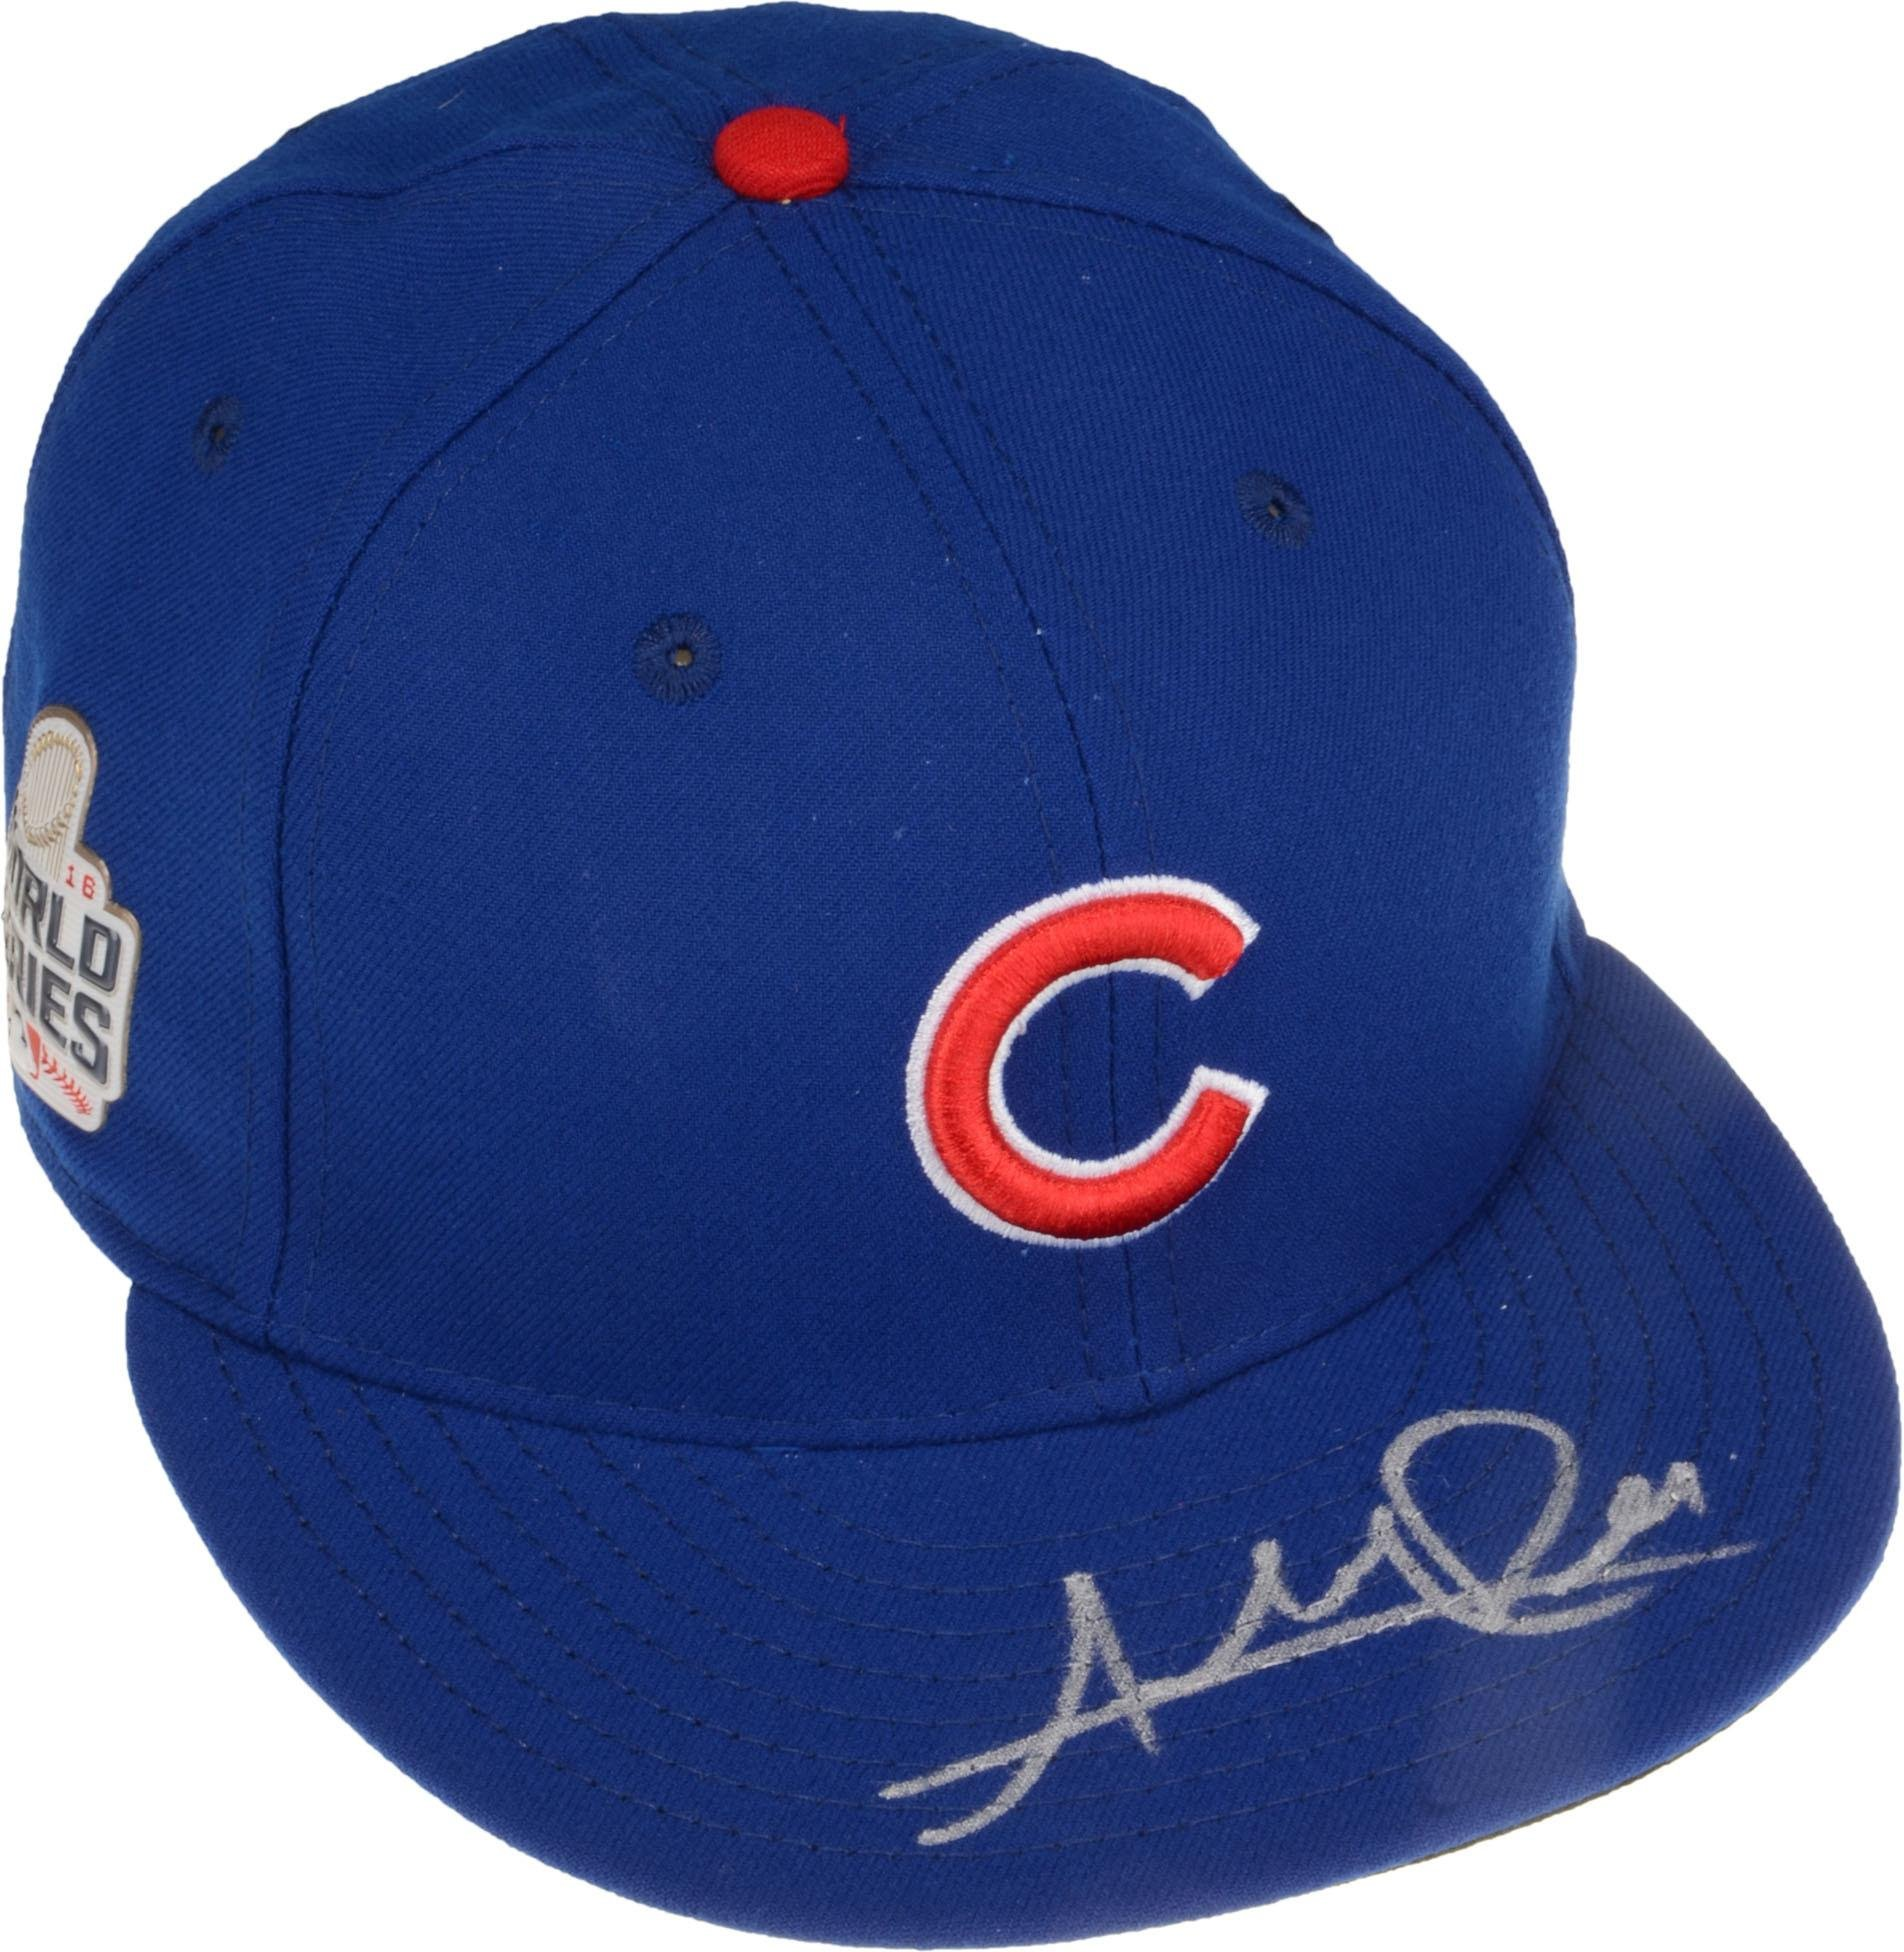 172a16400b0 Get Quotations · Addison Russell Chicago Cubs 2016 MLB World Series  Champions Autographed New Era World Series Hat -